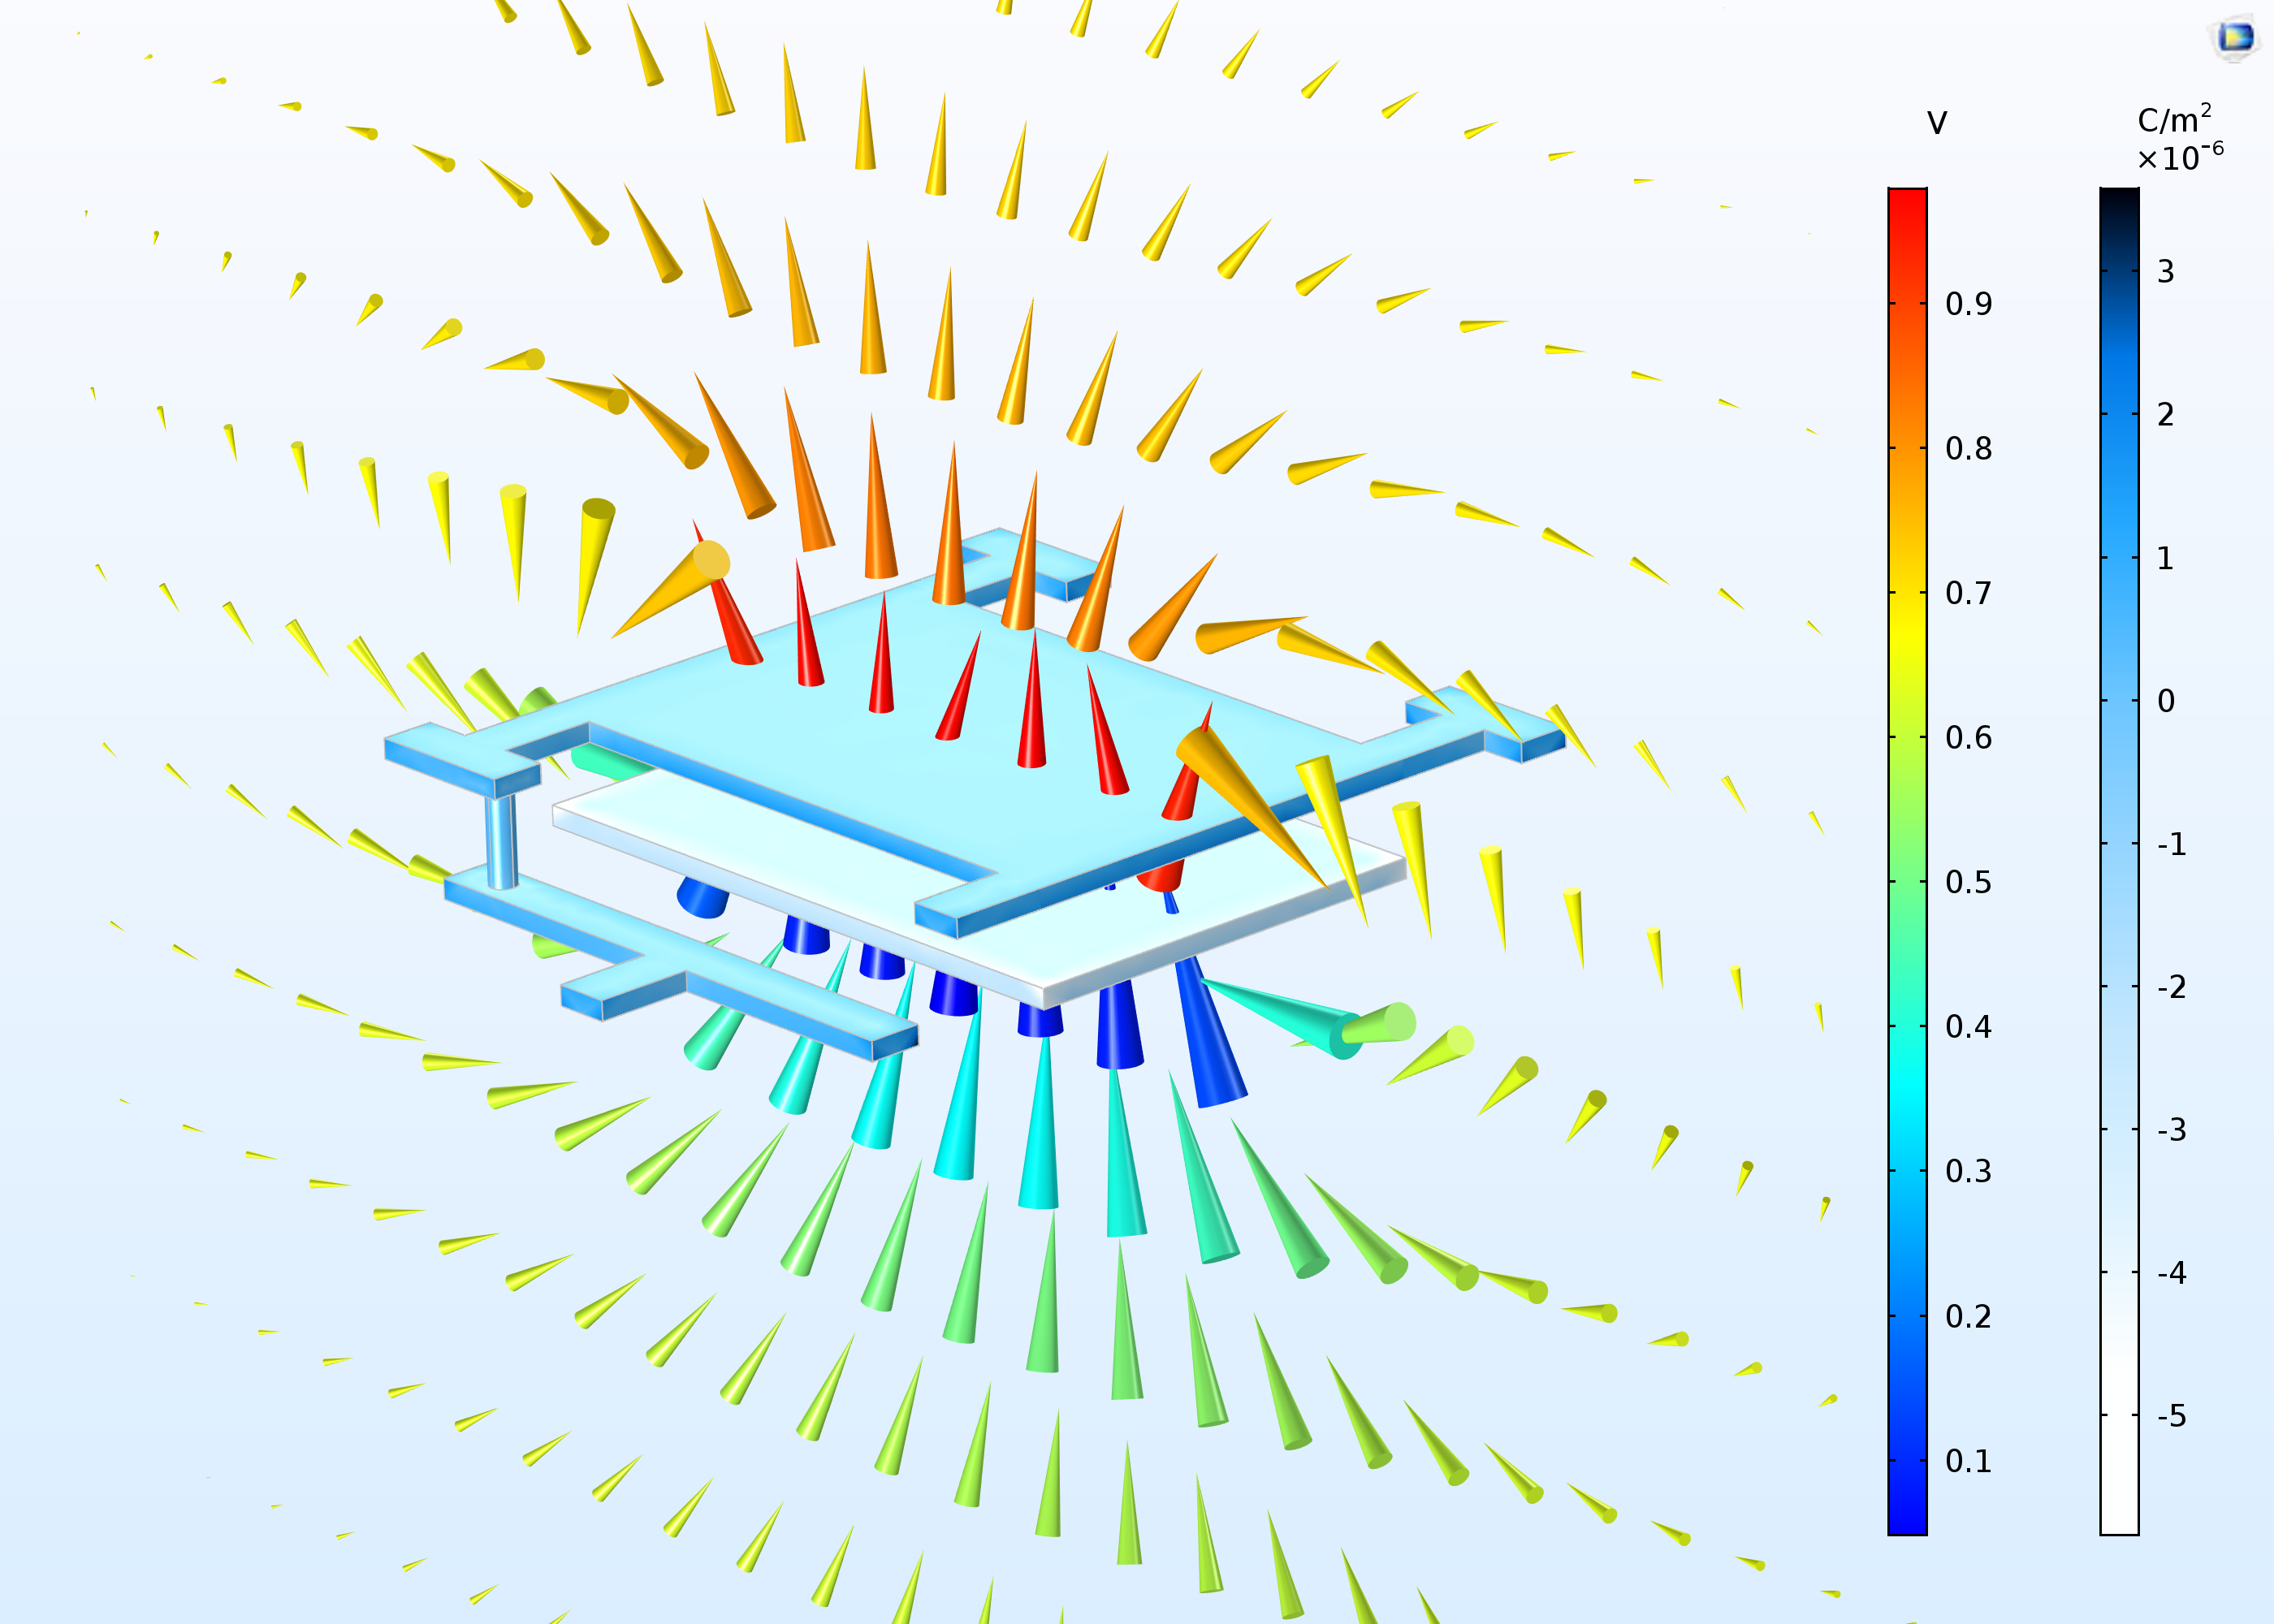 AC/DC Module Updates - COMSOL® 5.3 Release Highlights